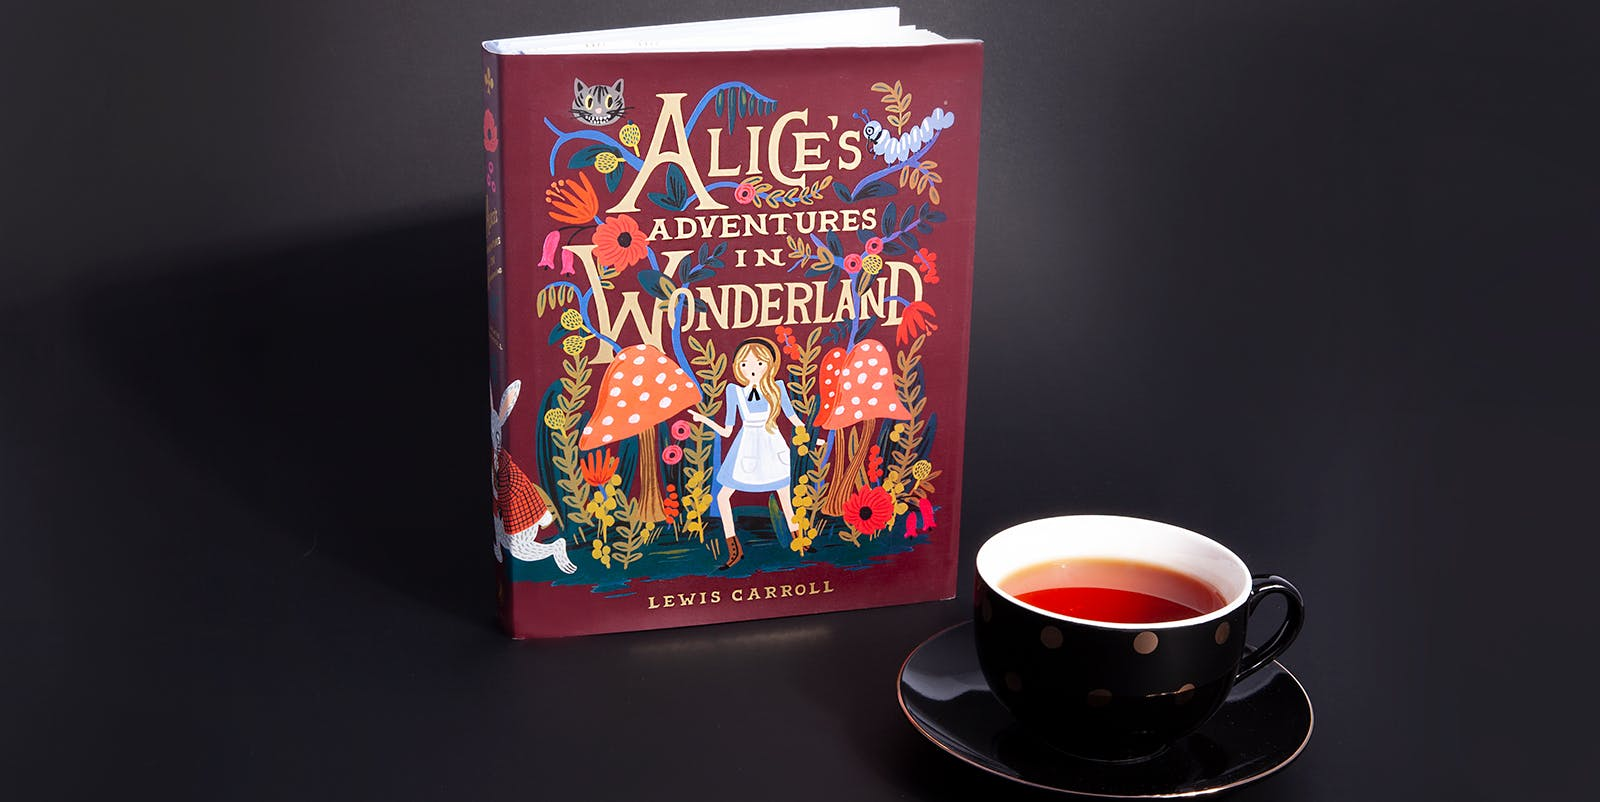 How well do you know Lewis Carroll?